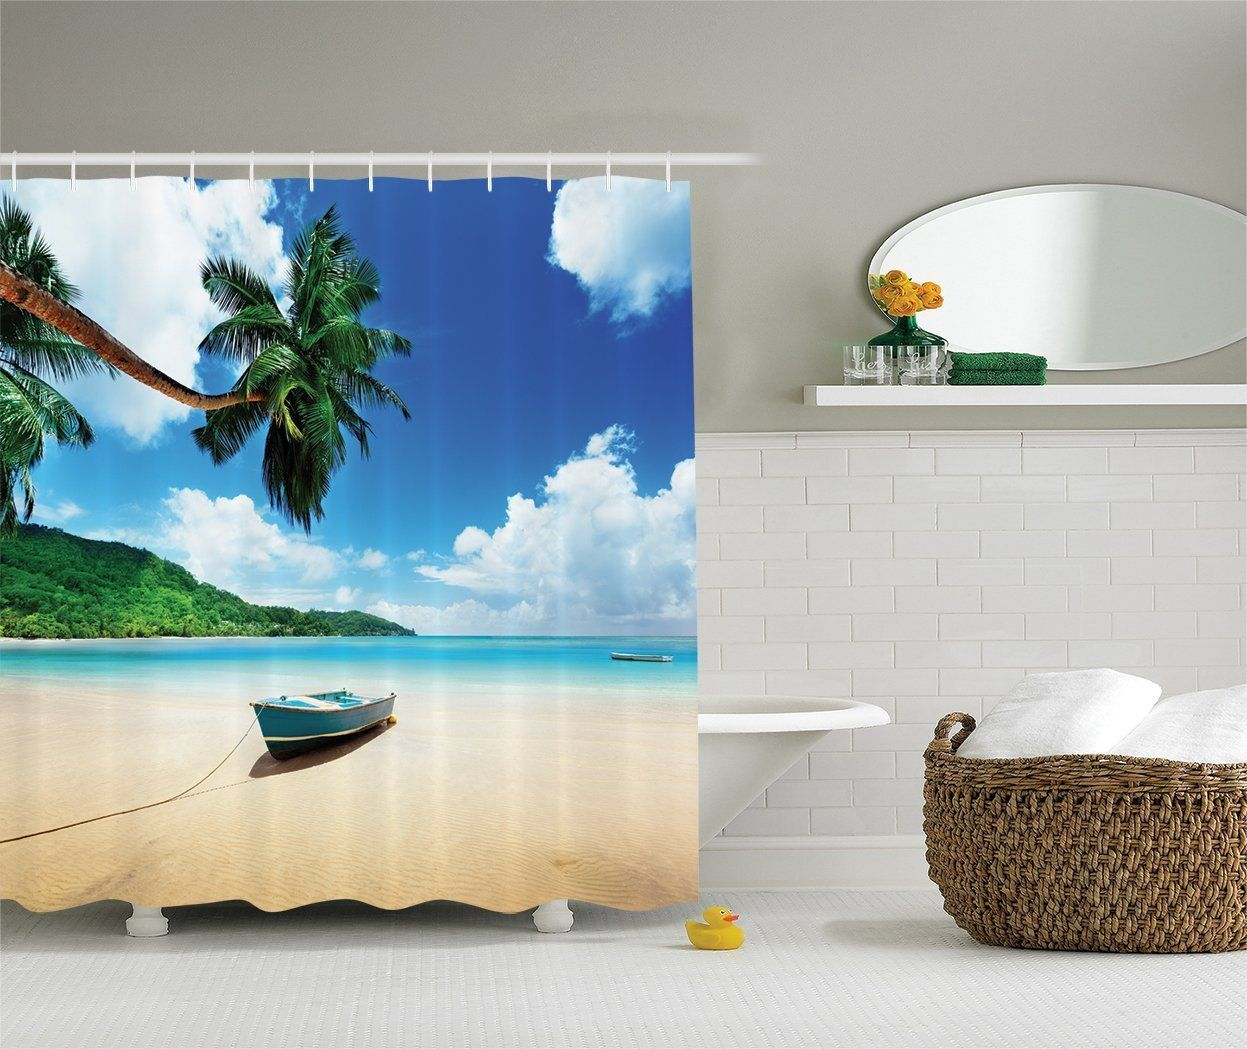 Beach Shower Curtains Discover The Best Themed And Coastal To Complete Your Bathroom Decor